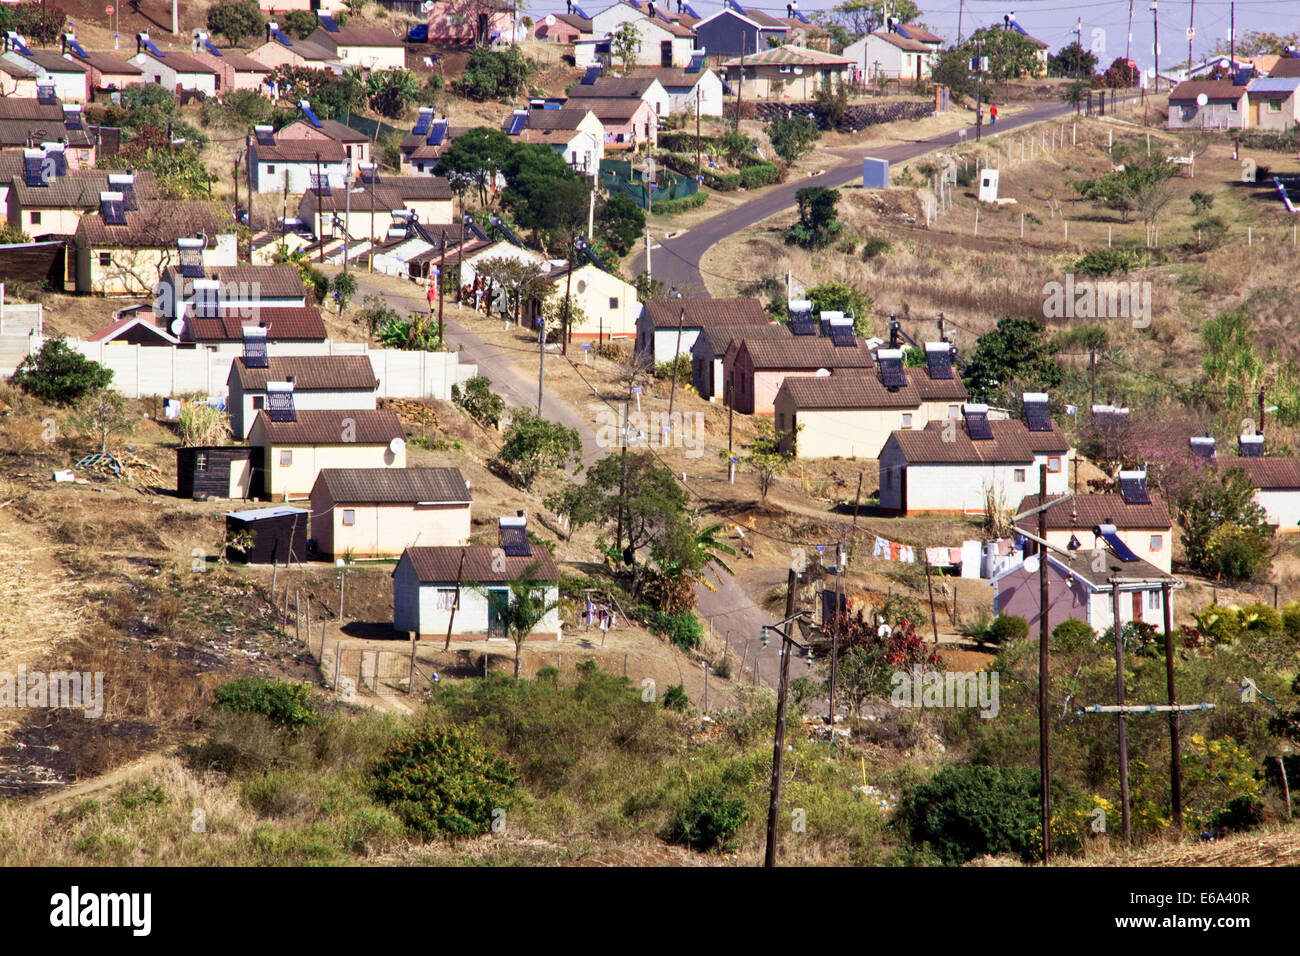 DURBAN, SOUTH AFRICA - JULY 23, 2014: Low cost township houses fitted with solar panels in Verulum in Durban, South - Stock Image